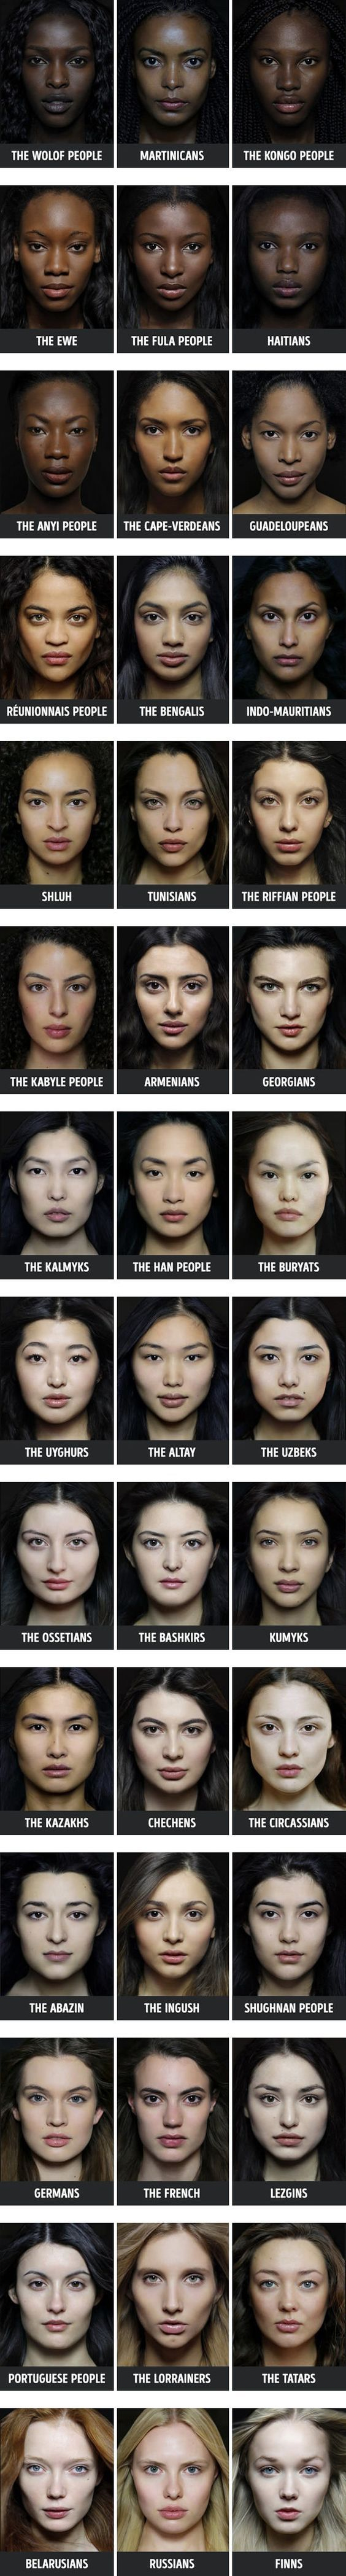 After overlaying thousands of portraits by ethnicity this artist rendered them…